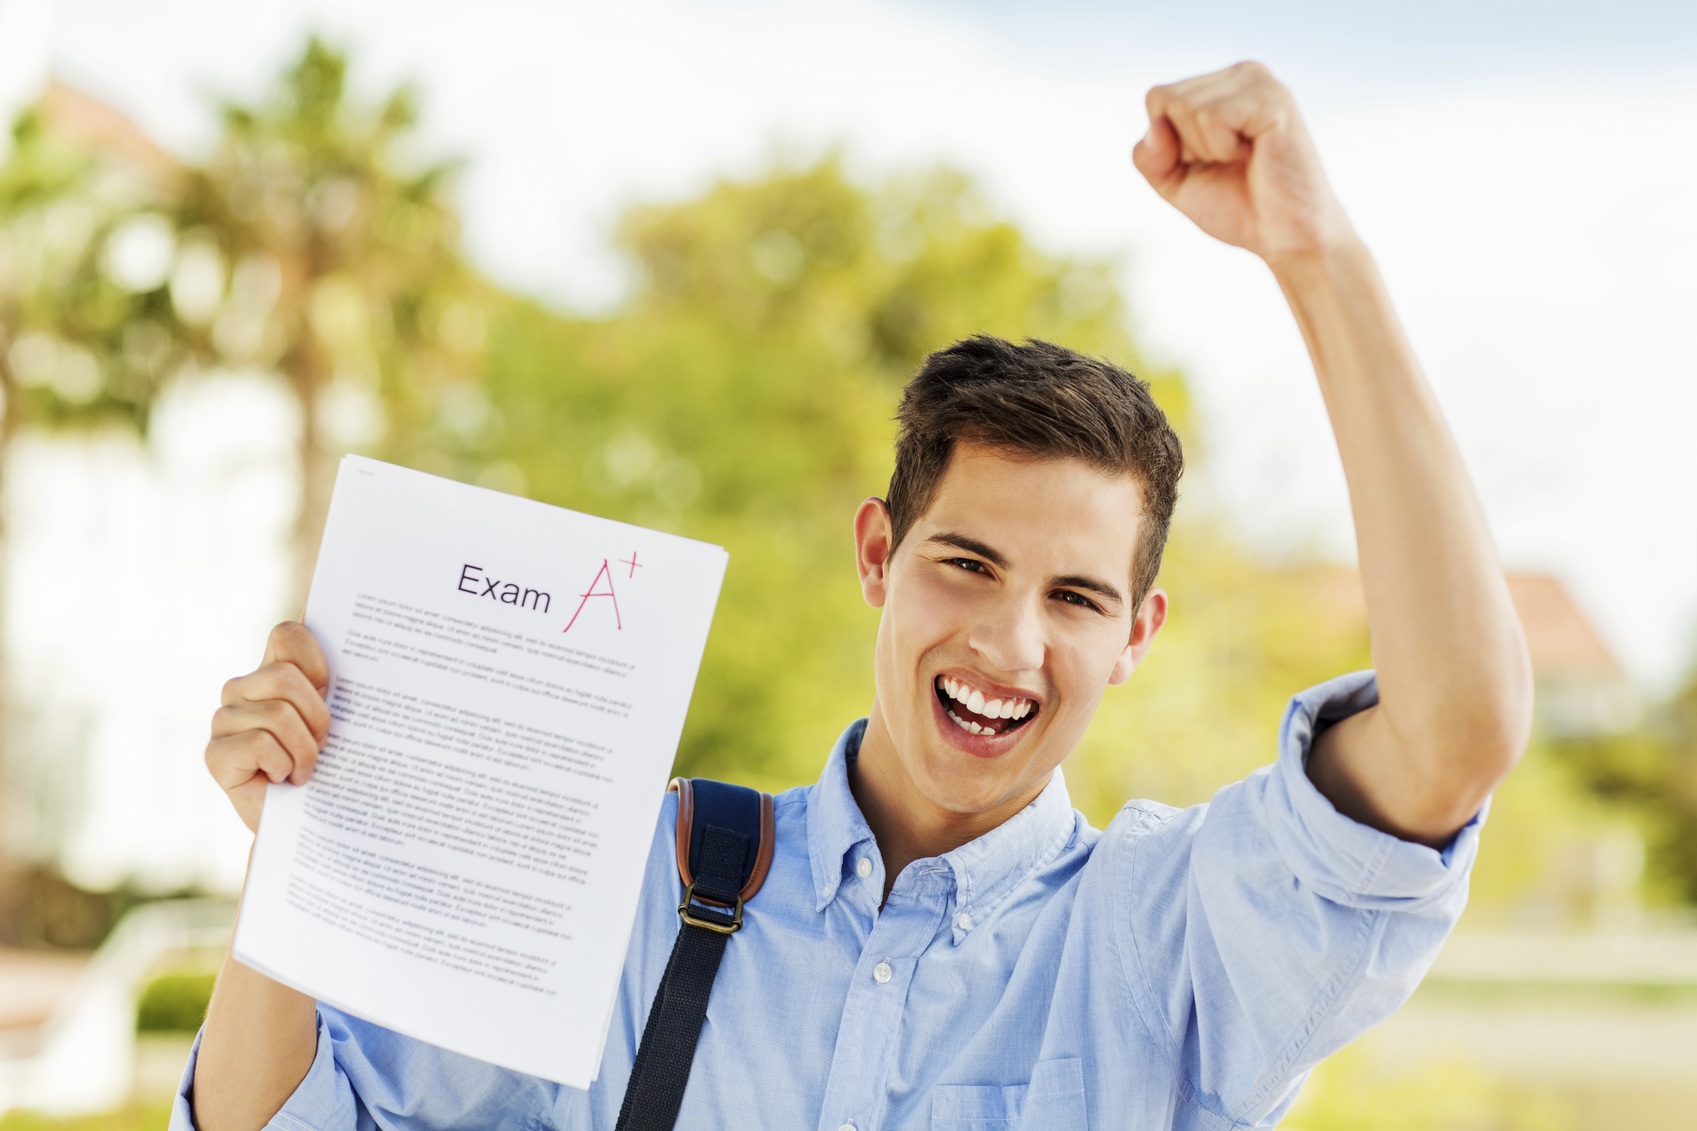 Portrait of happy student clenching fist while holding exam paper with A+ grade on university campus. Horizontal shot.